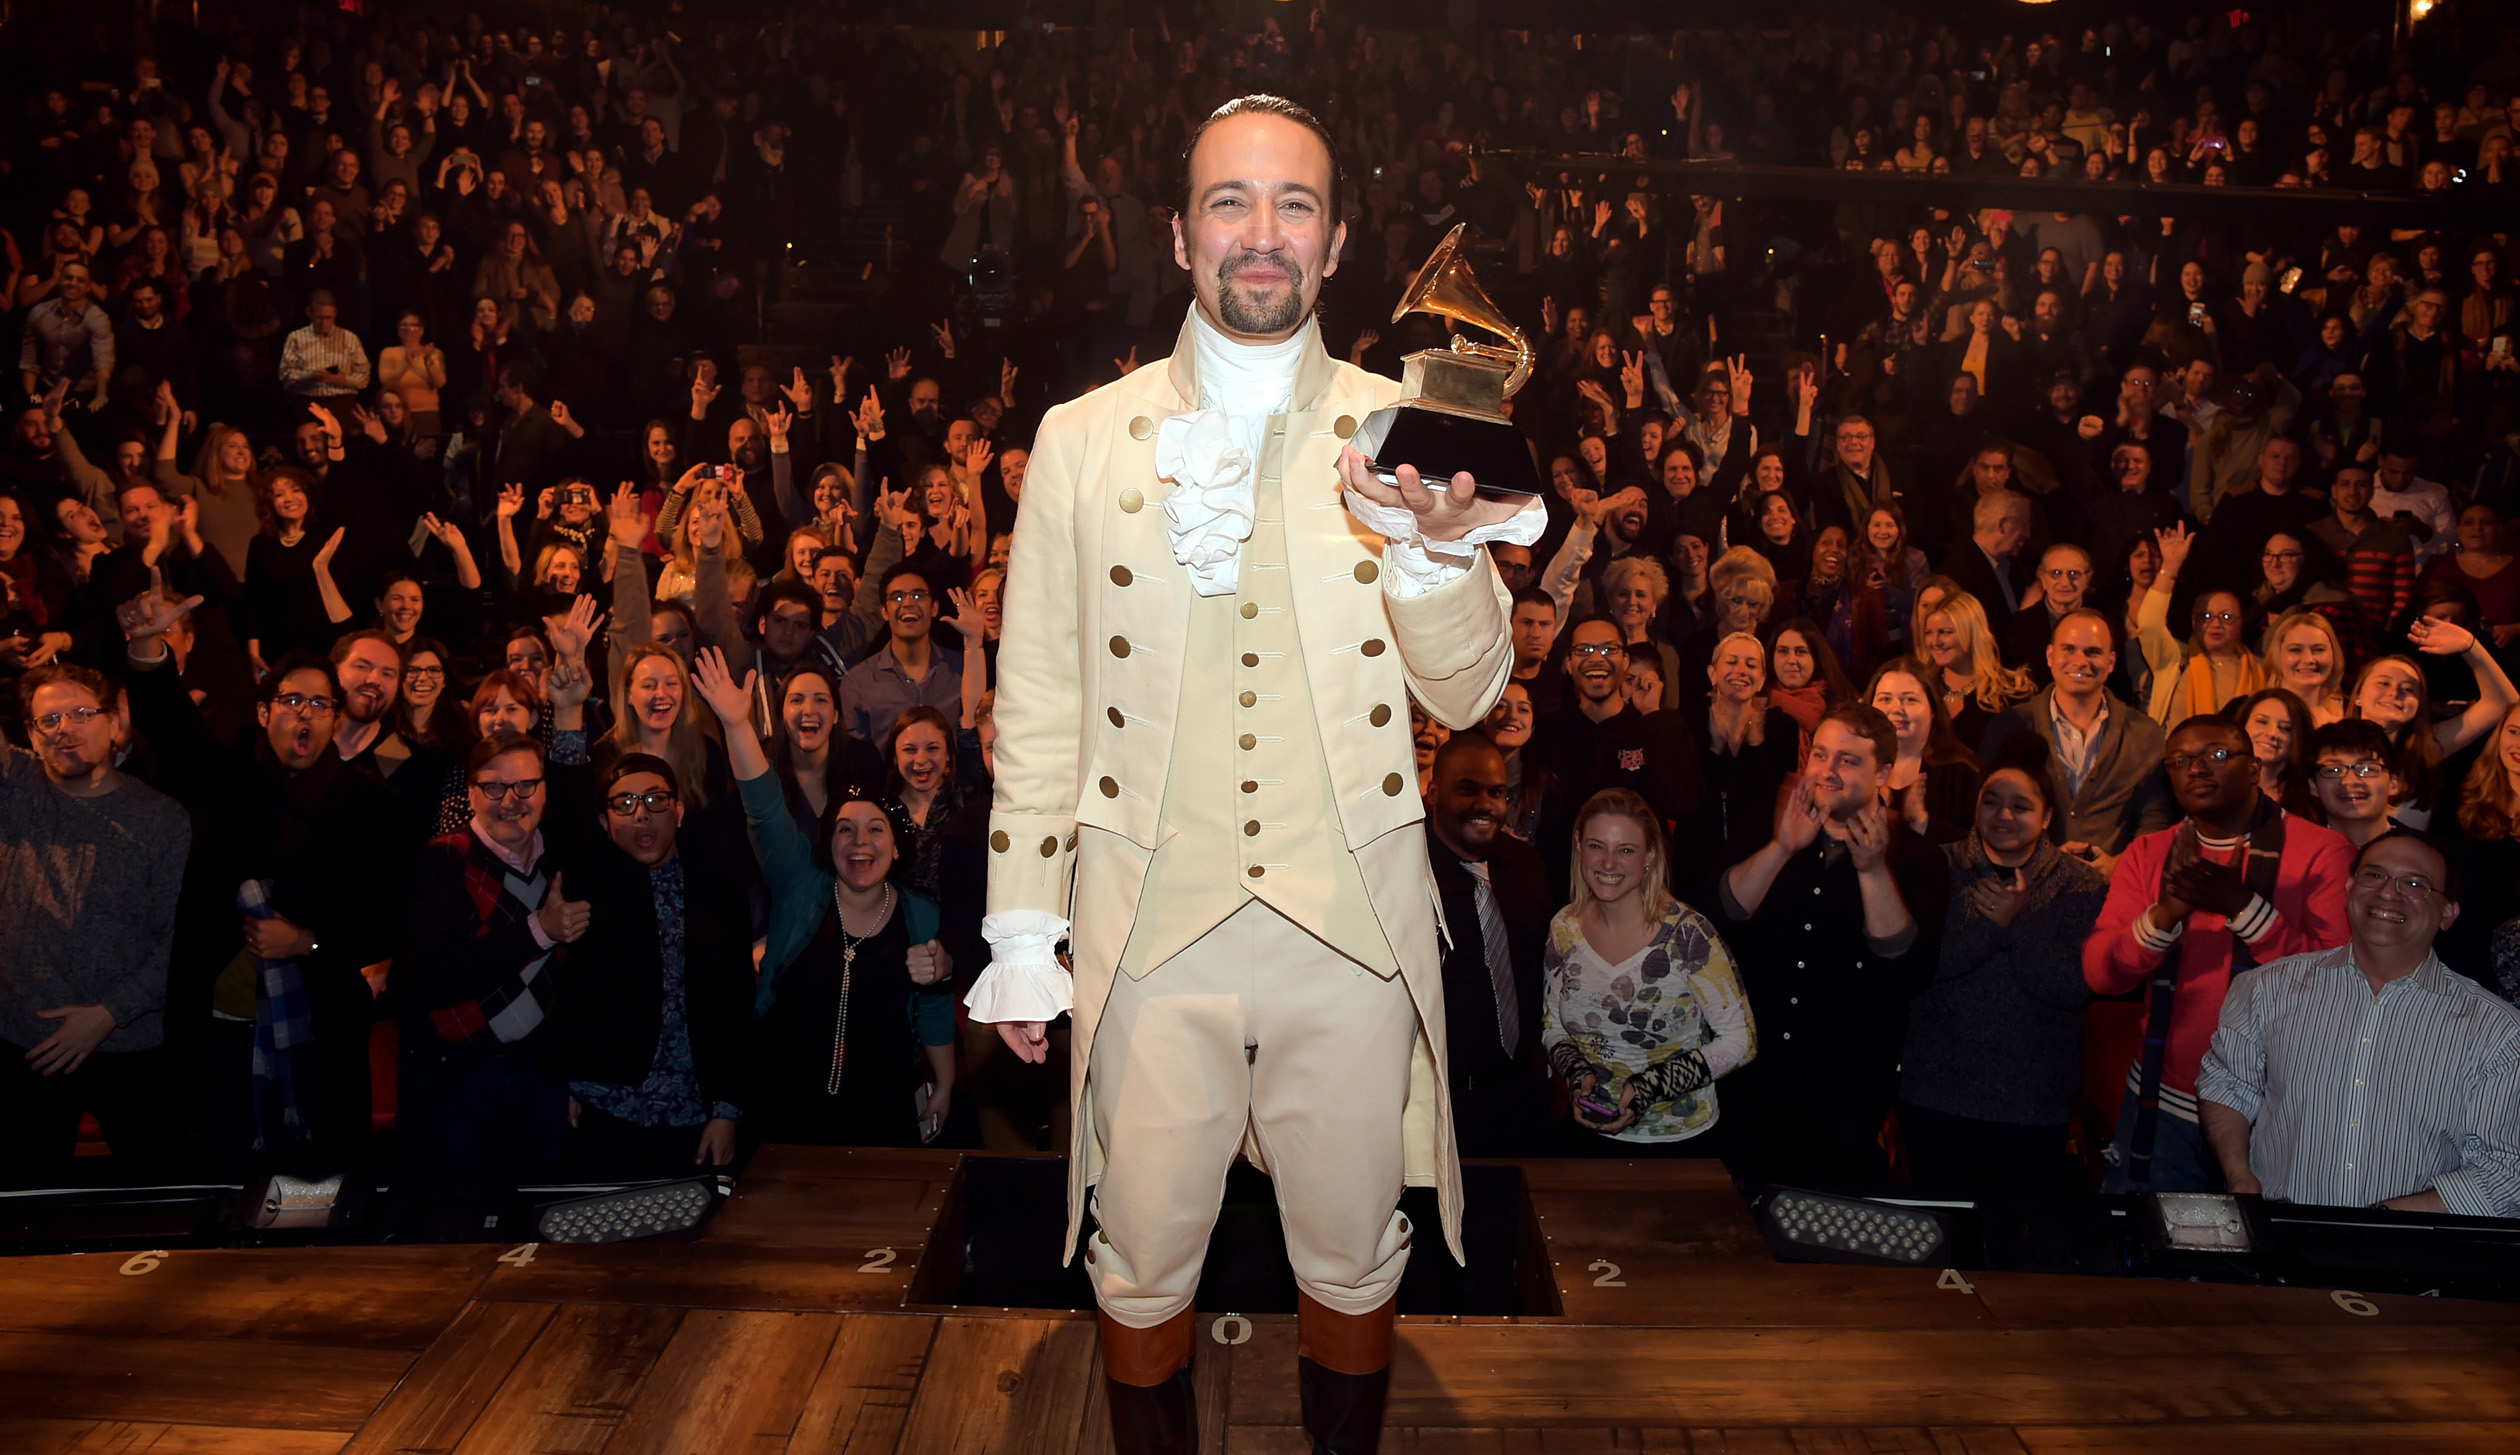 """Lin-Manuel Miranda celebrates receiving the GRAMMY award for """"Hamilton's"""" Best Musical Theater Album on stage during a February 2016 performance."""